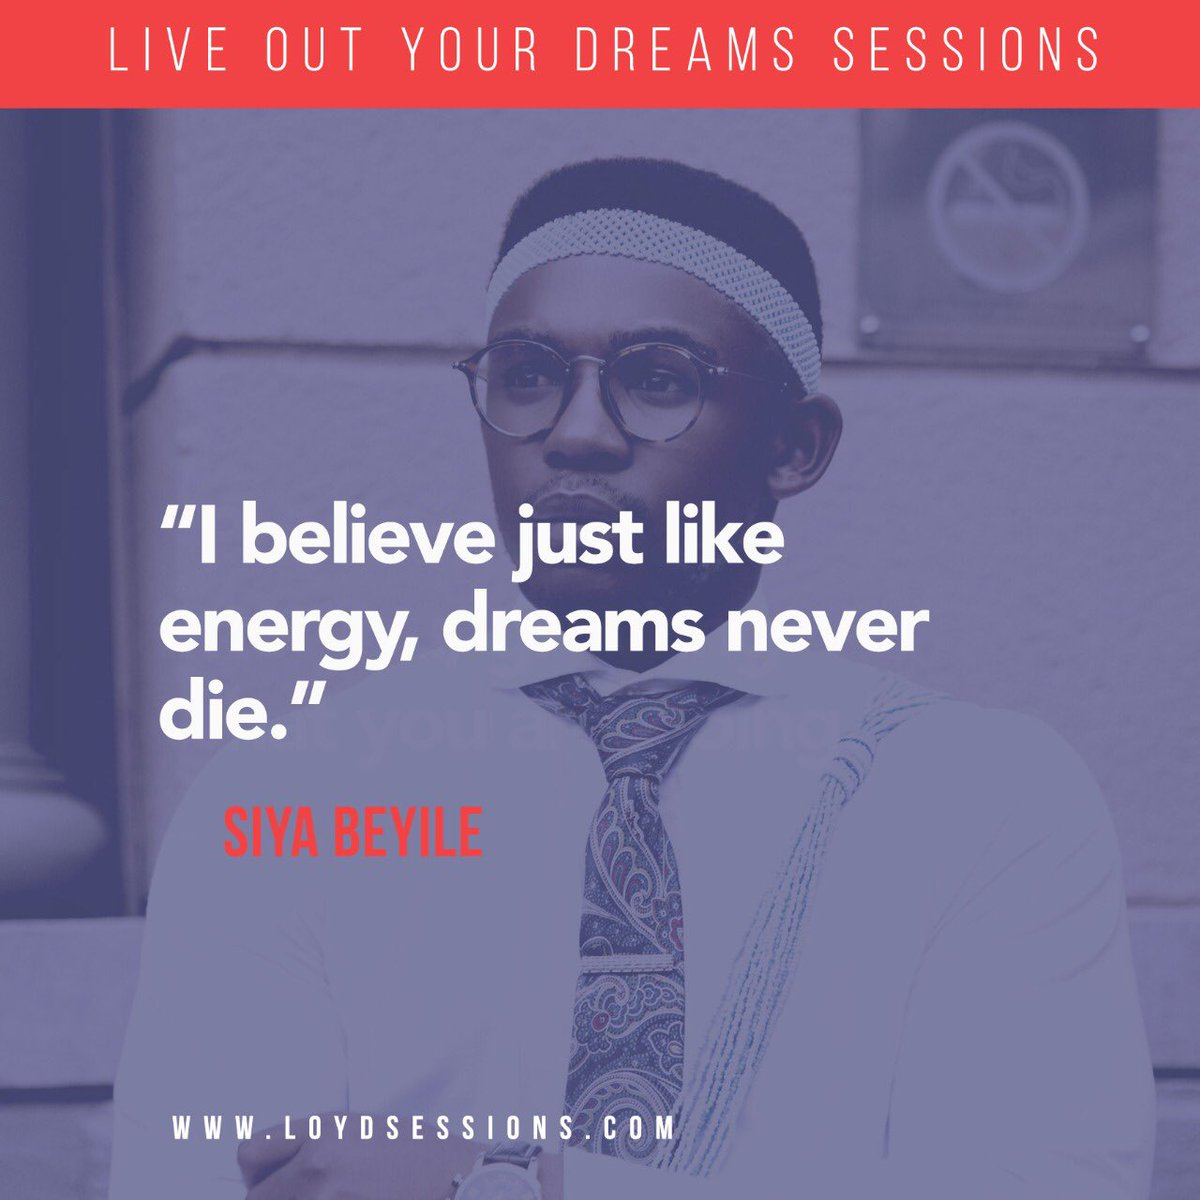 Some wisdom from The Threaded Man, @SiyaBeyile #LOYDSessions #LiveBetterTalks